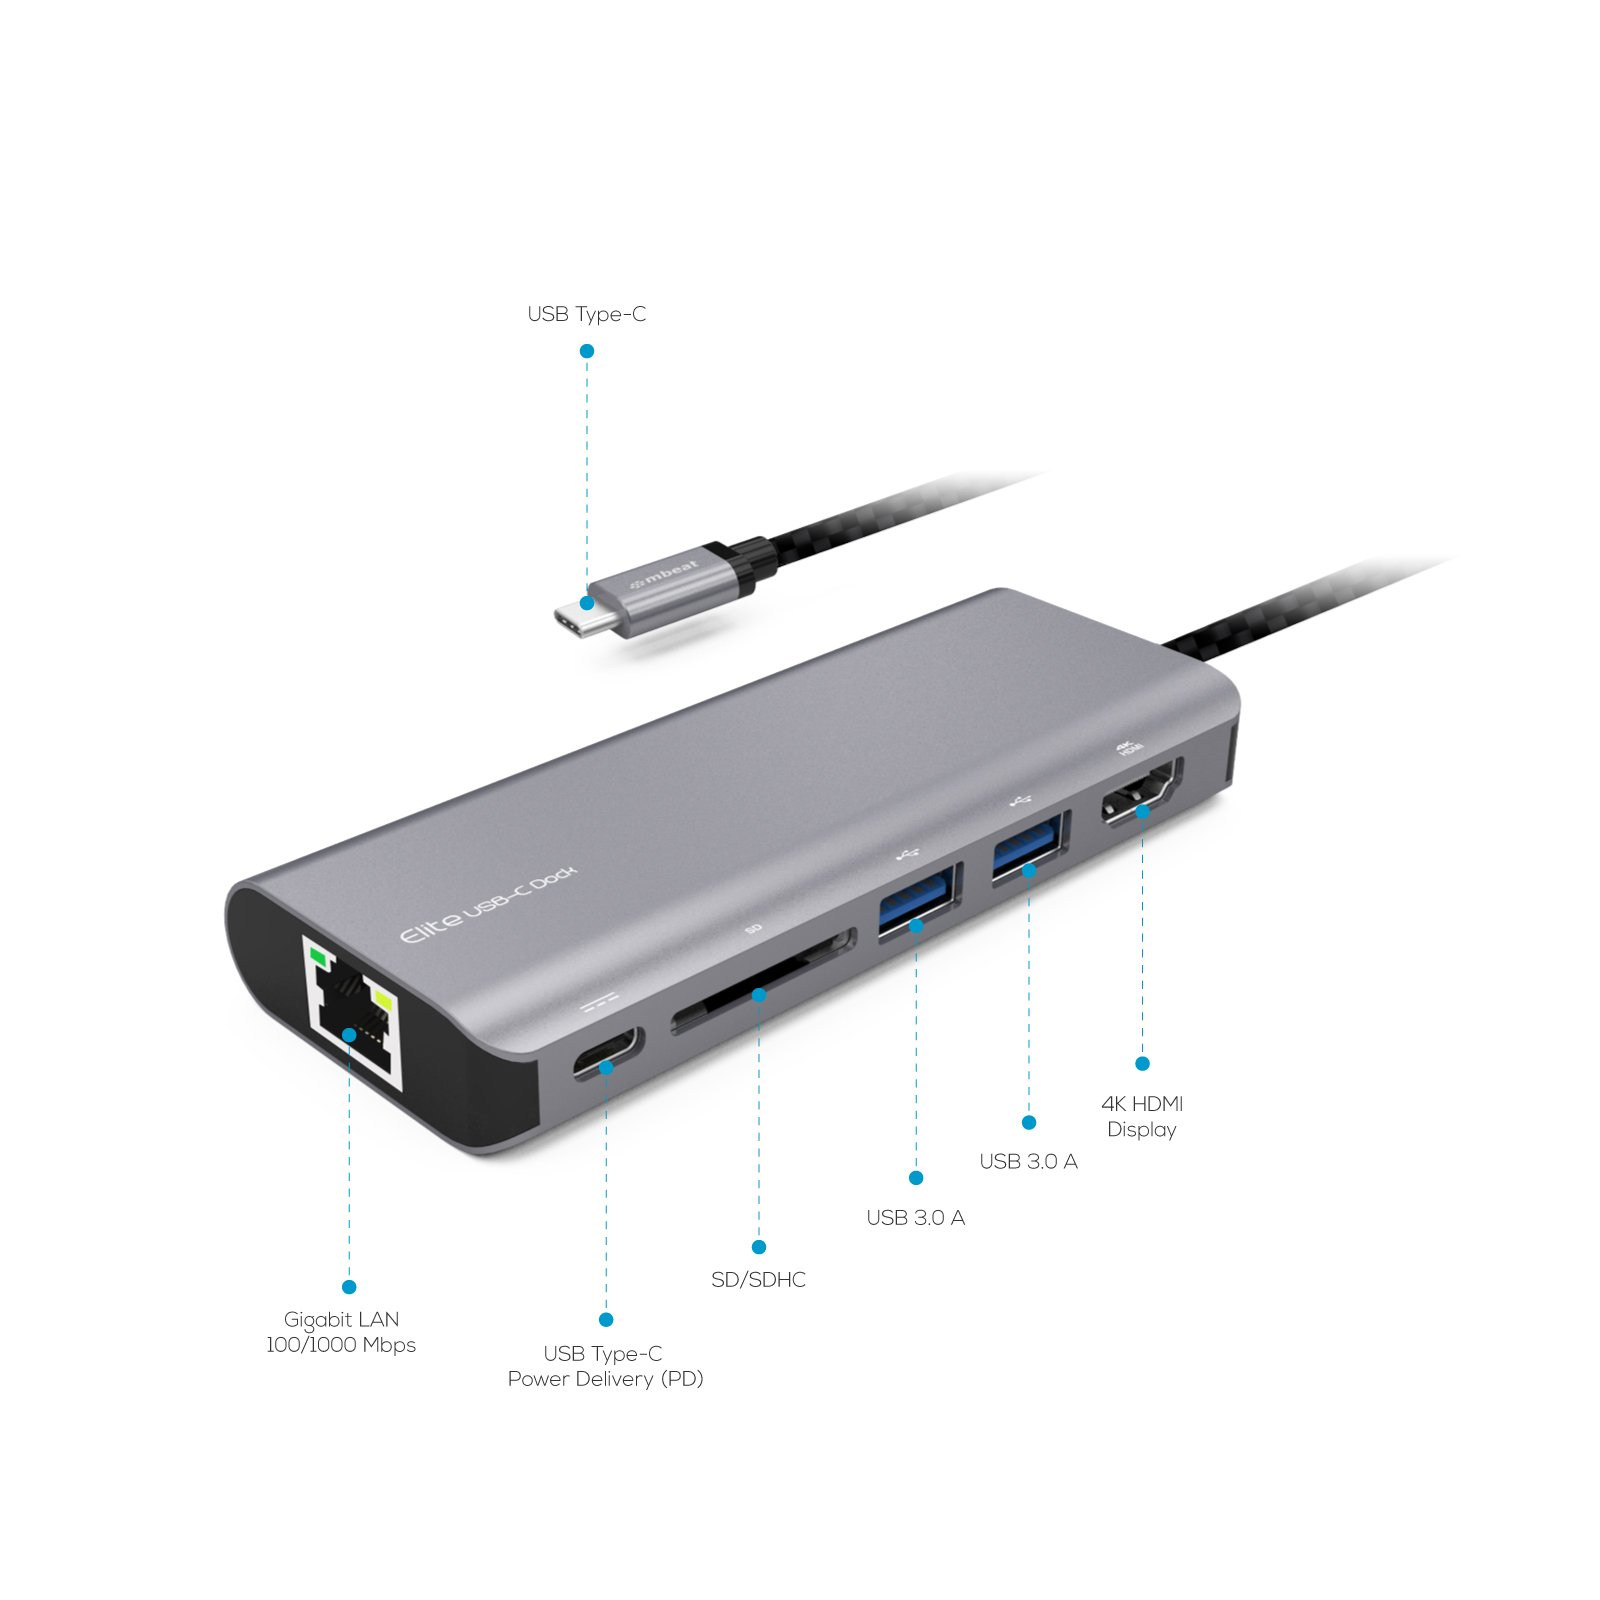 mbeat USB-C Hub (USB Type C) Docking Station, supports MacBook Pro, 60W power pass through, 4K HDMI, Ethernet(RJ45), 2 x USB 3.1 Type-A ports, USB-C port, SD memory Card Reader (Space Grey) by mbeat (Image #2)